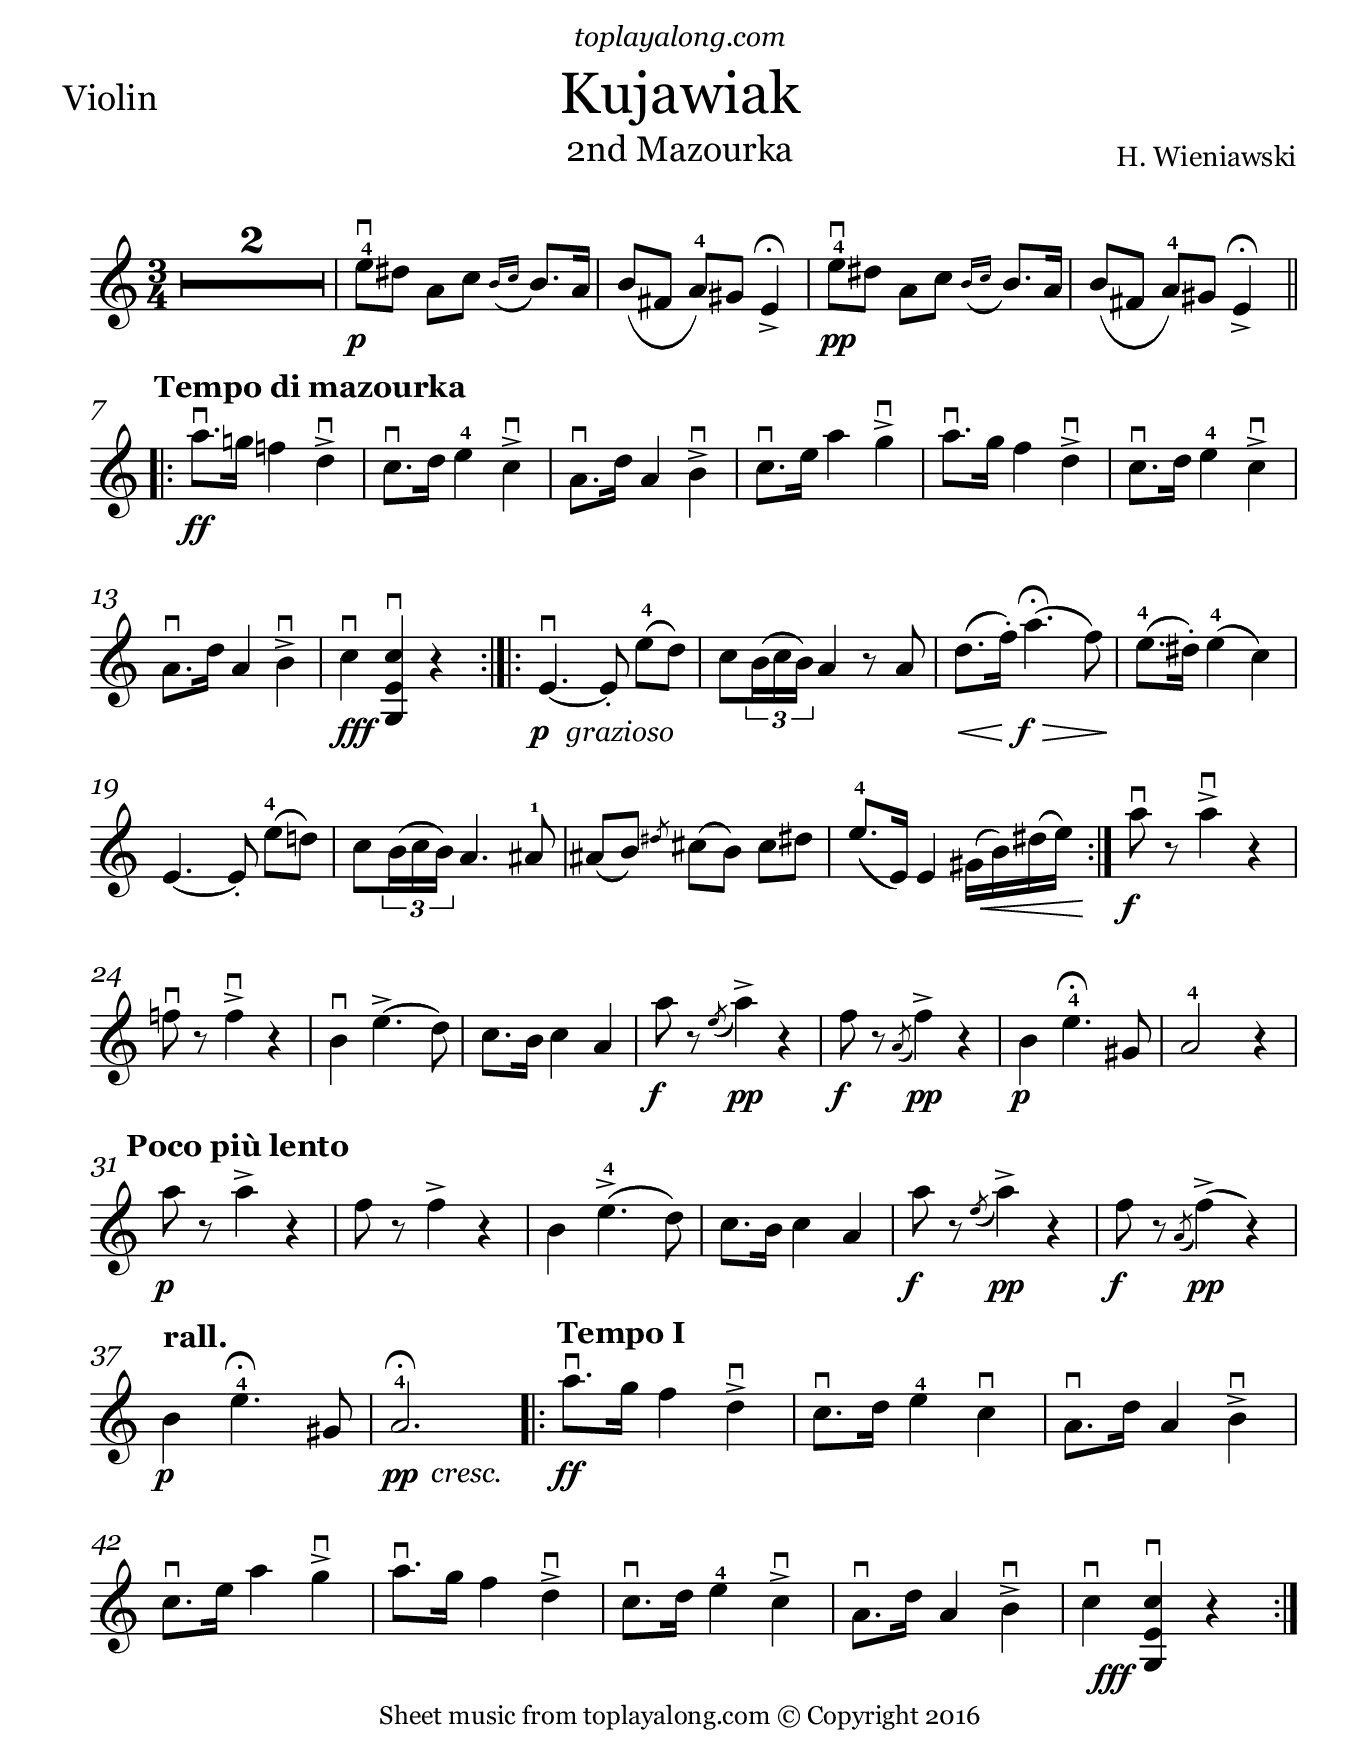 Kujawiak in A minor by Wieniawski. Sheet music for Violin, page 1.